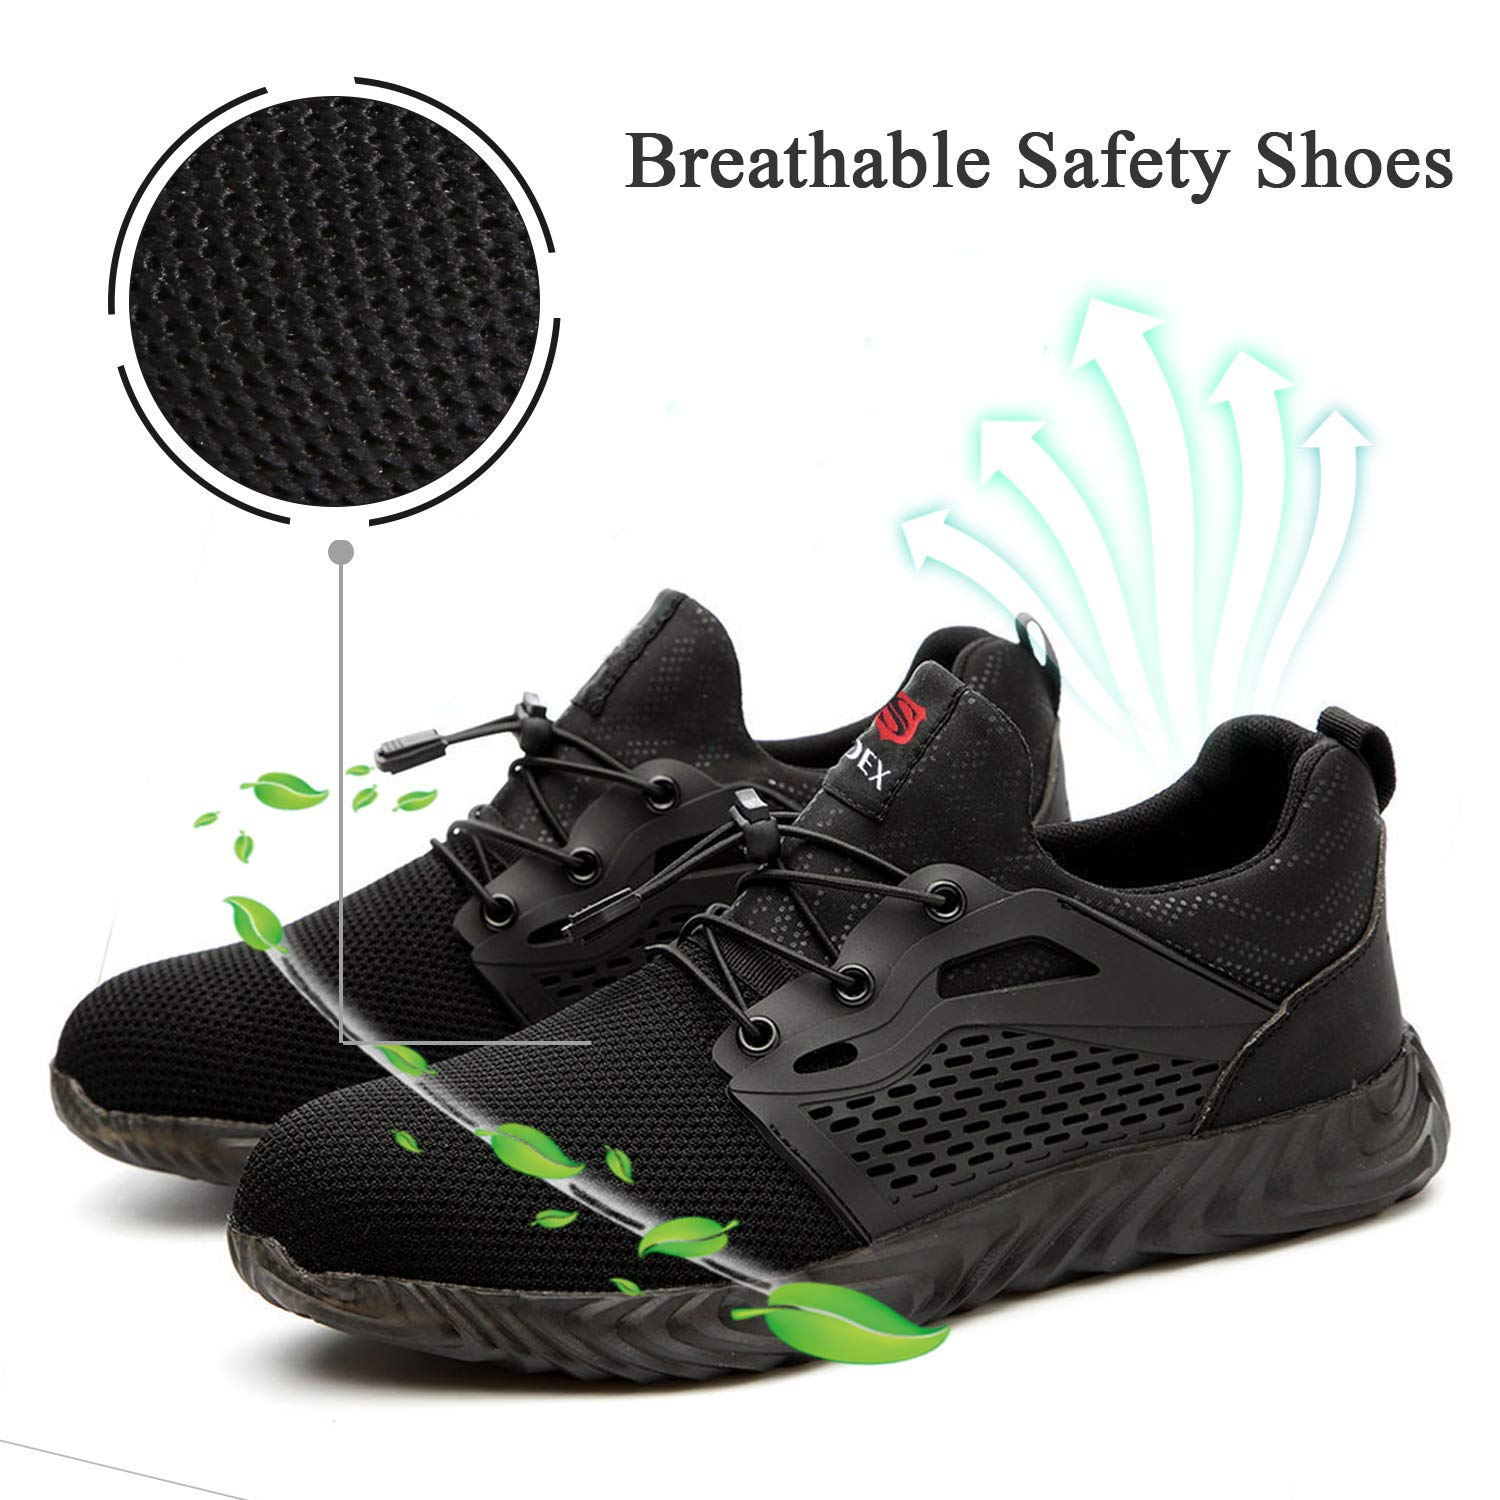 7f7190578b142 SITAILE Safety Shoes for Men,Indestructible Steel Toe Shoes for  Women,Breathable Lightweight Slip Resistant Puncture Proof Industrial  Construction ...